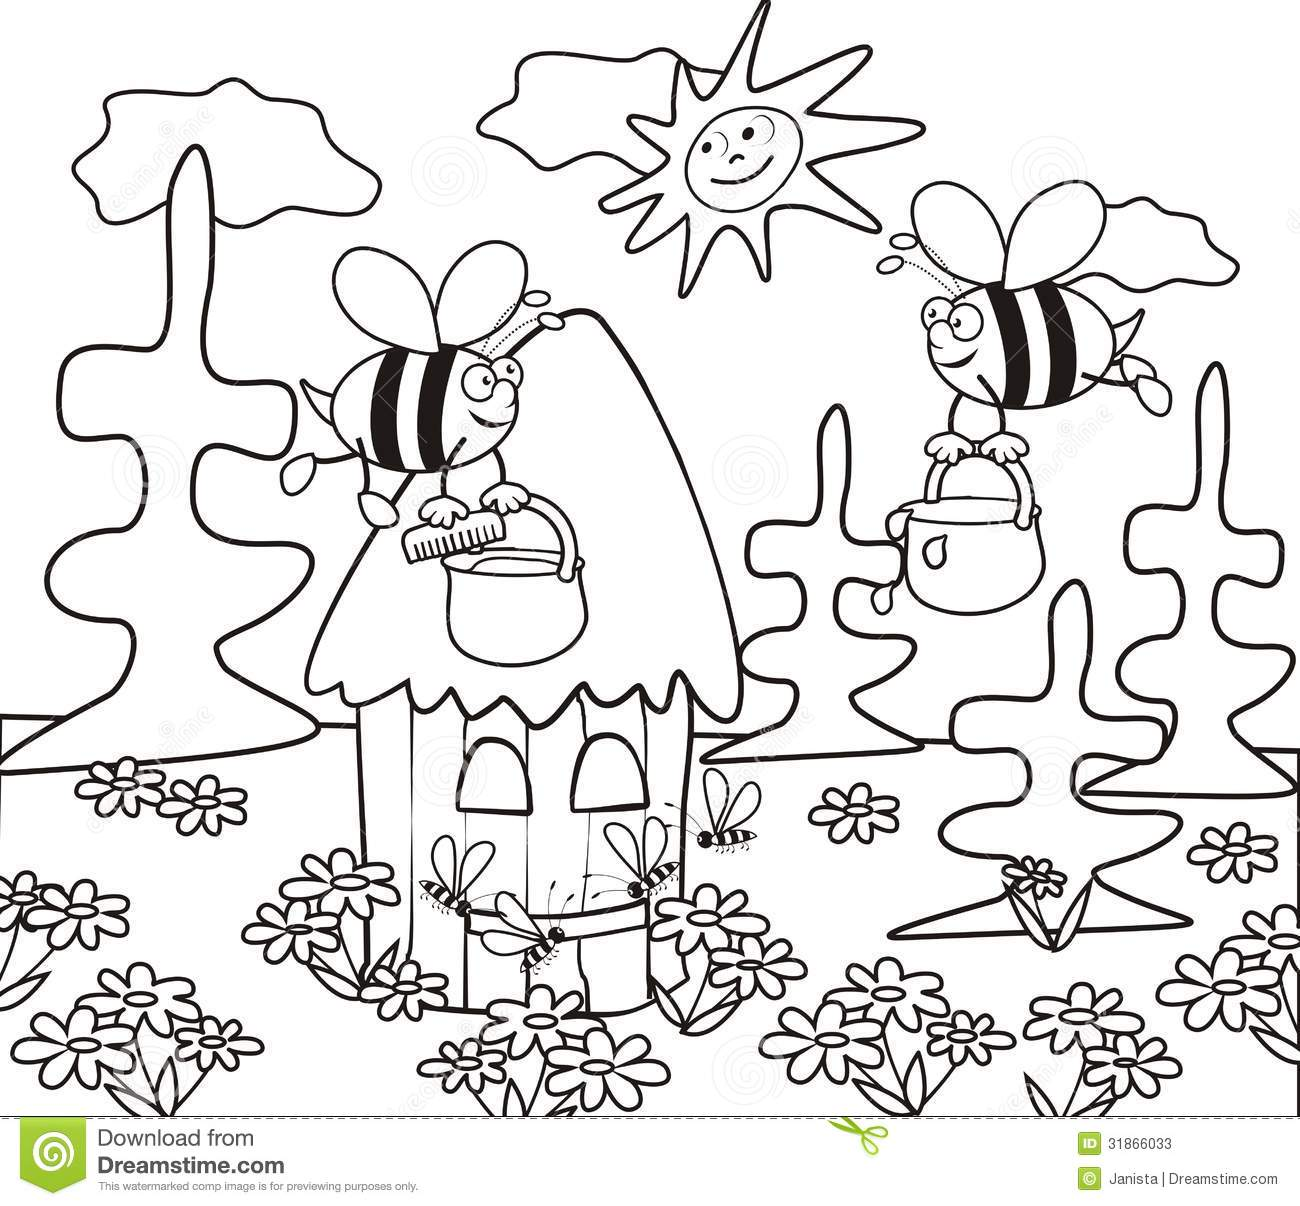 hive coloring book - Coloring Book For Children